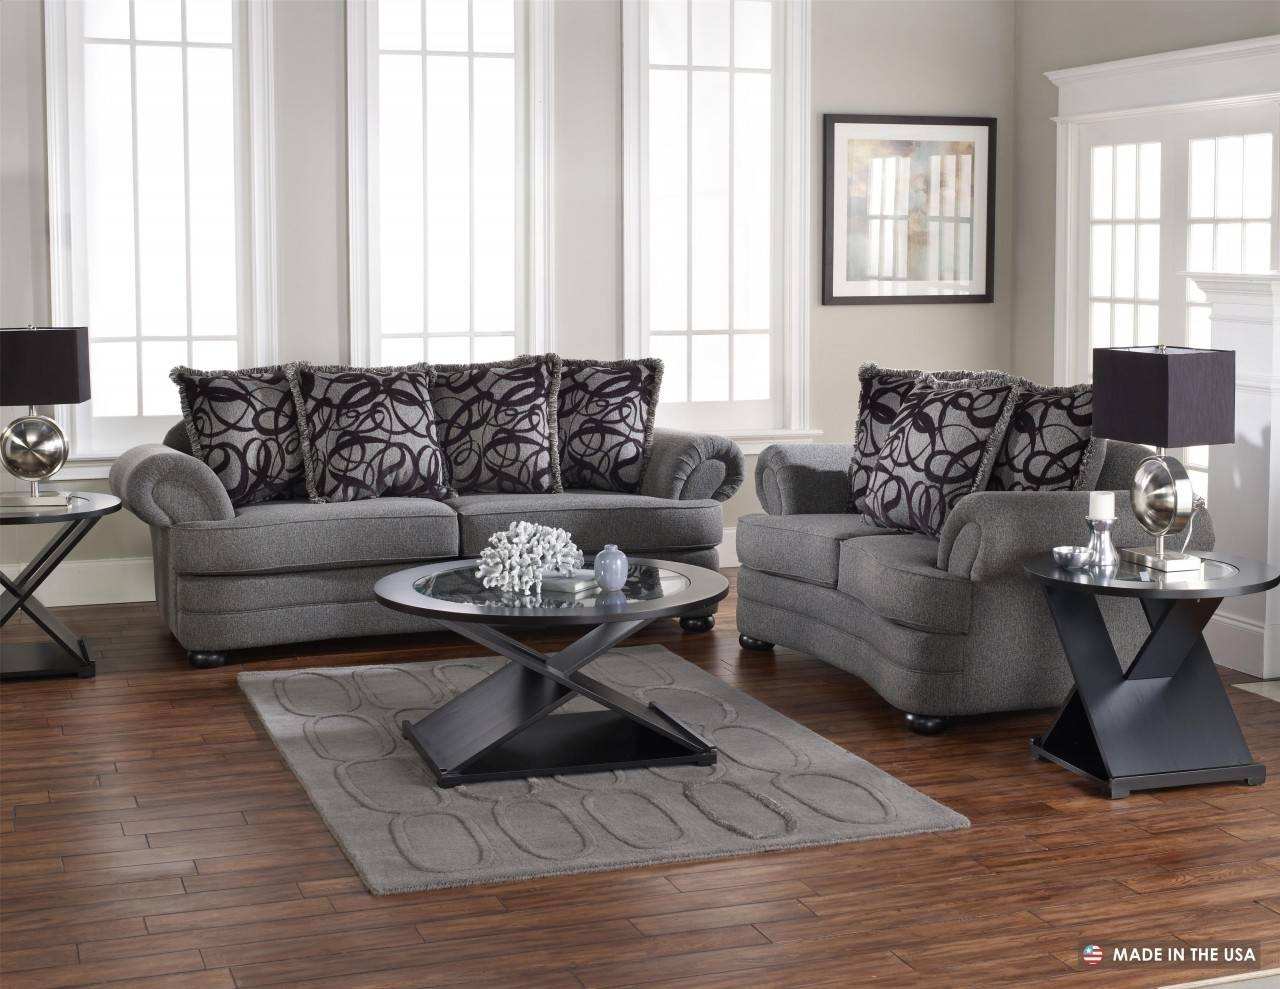 Epic Grey Living Room Furniture Set 61 On Living Room Sofa Ideas inside Living Room With Grey Sofas (Image 8 of 15)